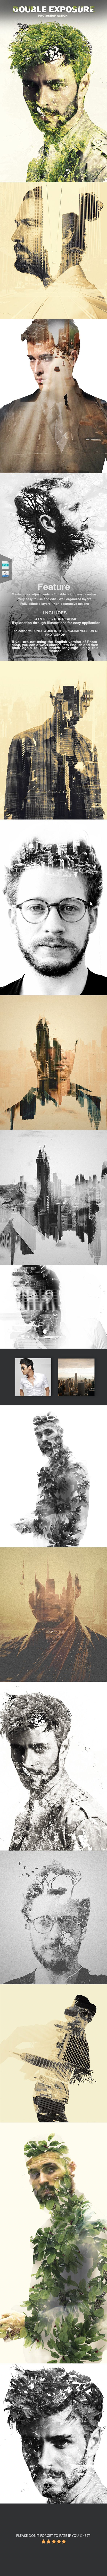 #Double #Exposure Photoshop Action - Photoshop Add-ons  #Actions #PSAction #Photoshop #PS #Graphicriver #PhotoEffects #Digitalart #Design